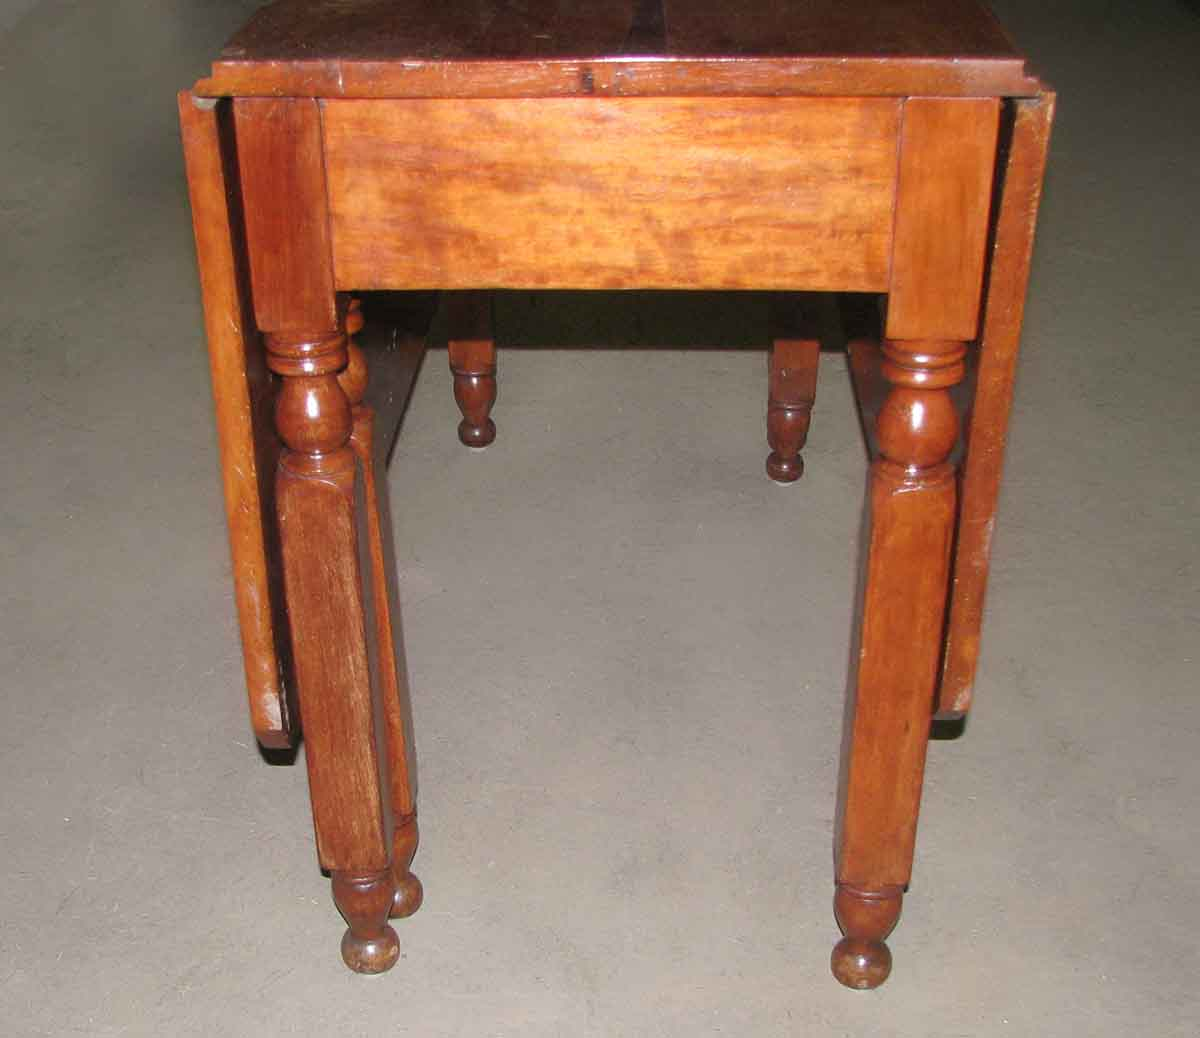 American Style Cherry Drop Leaf Table Olde Good Things : L212868 02 from ogtstore.com size 1200 x 1038 jpeg 36kB